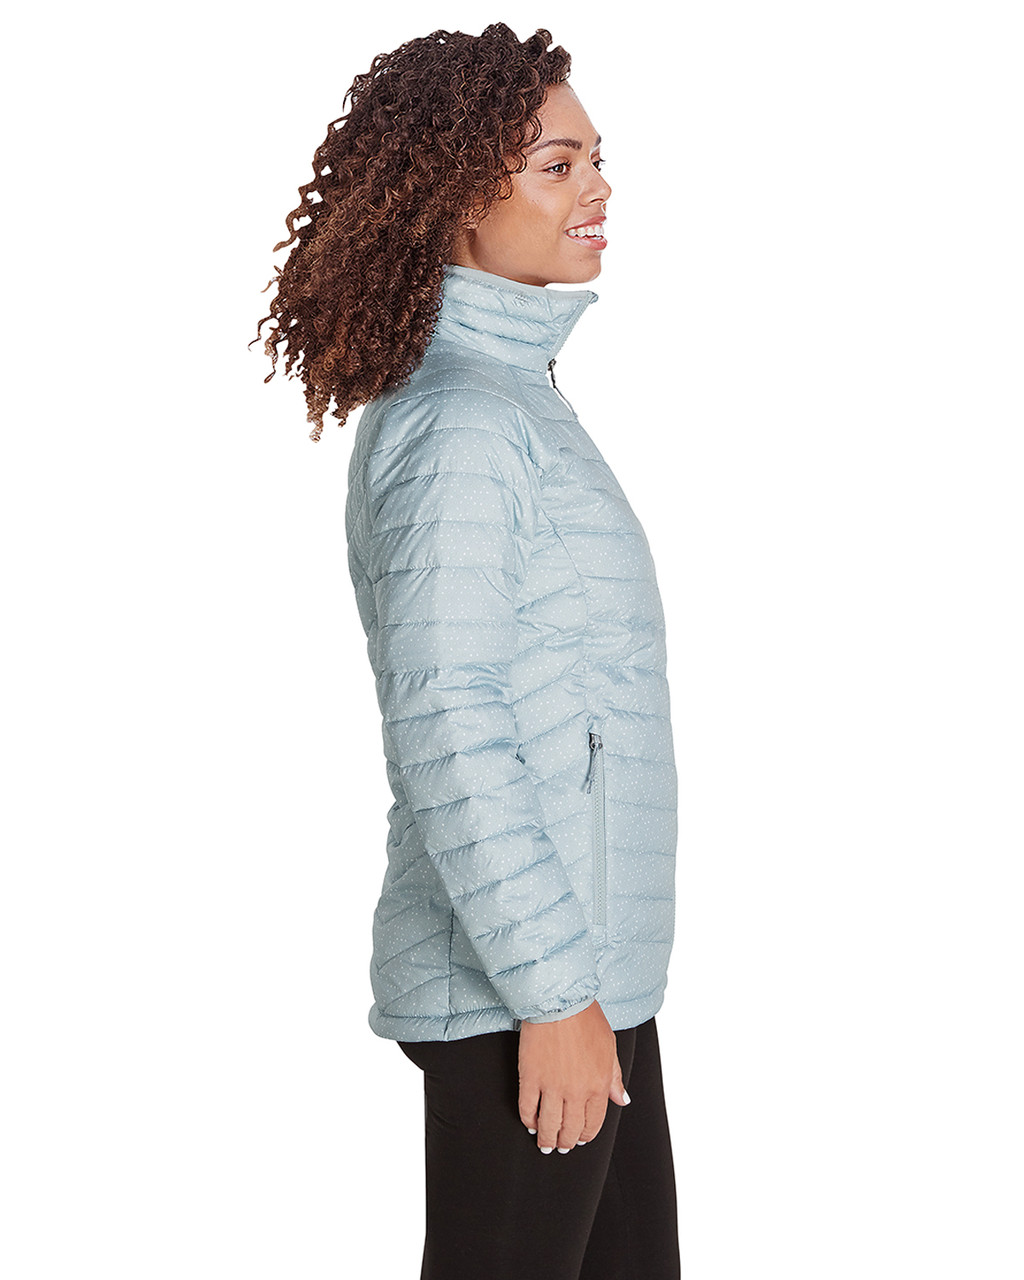 Cirrus Grey Sparkler Print - Side, 1699061 Columbia Ladies' Powder Lite™ Jacket | Blankclothing.ca